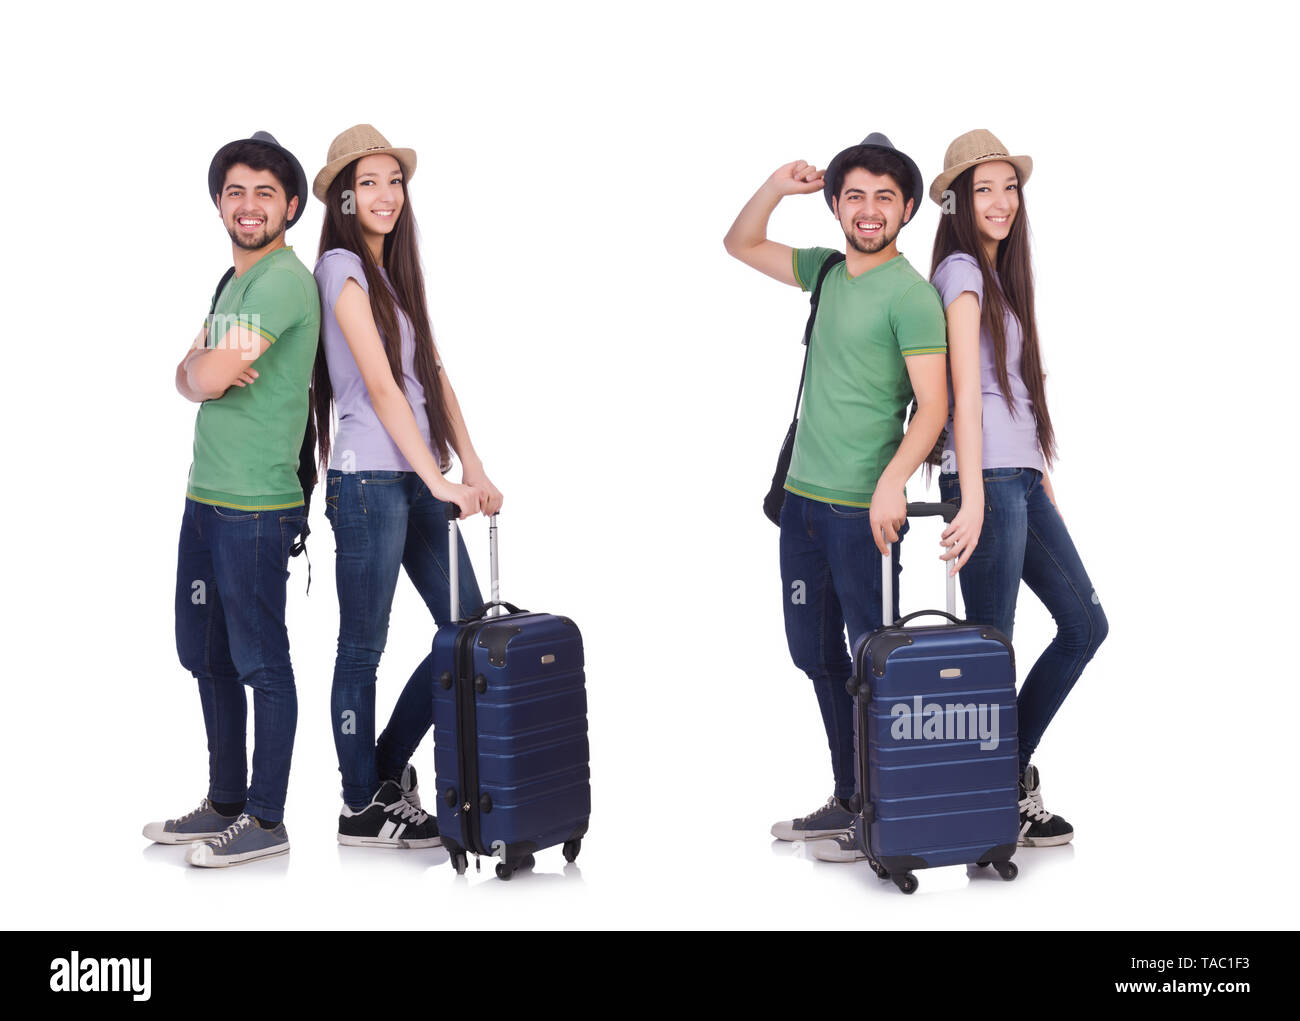 Students ready for travel on white - Stock Image